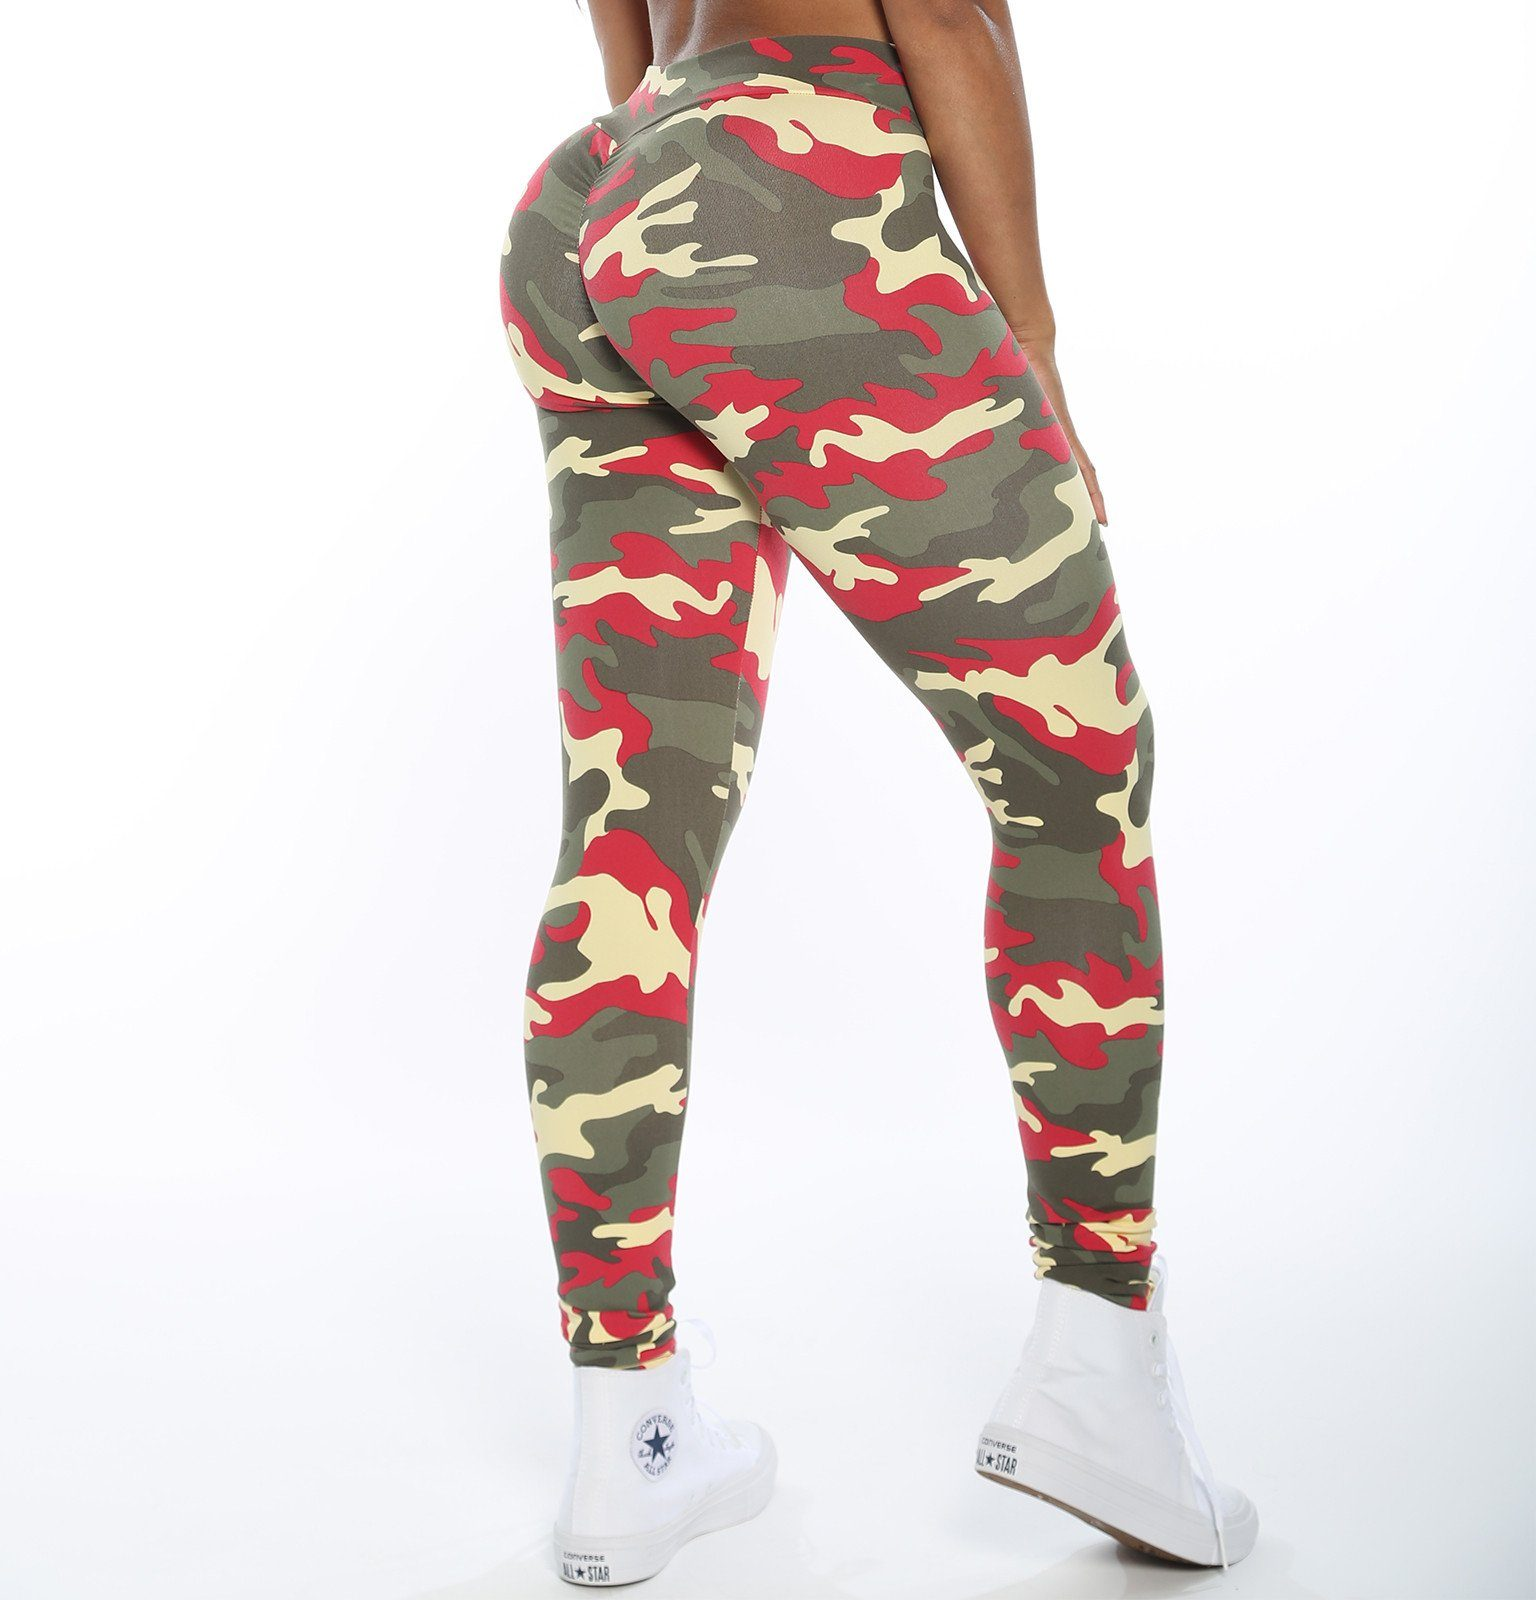 V-Cut Desert Camo Leggings